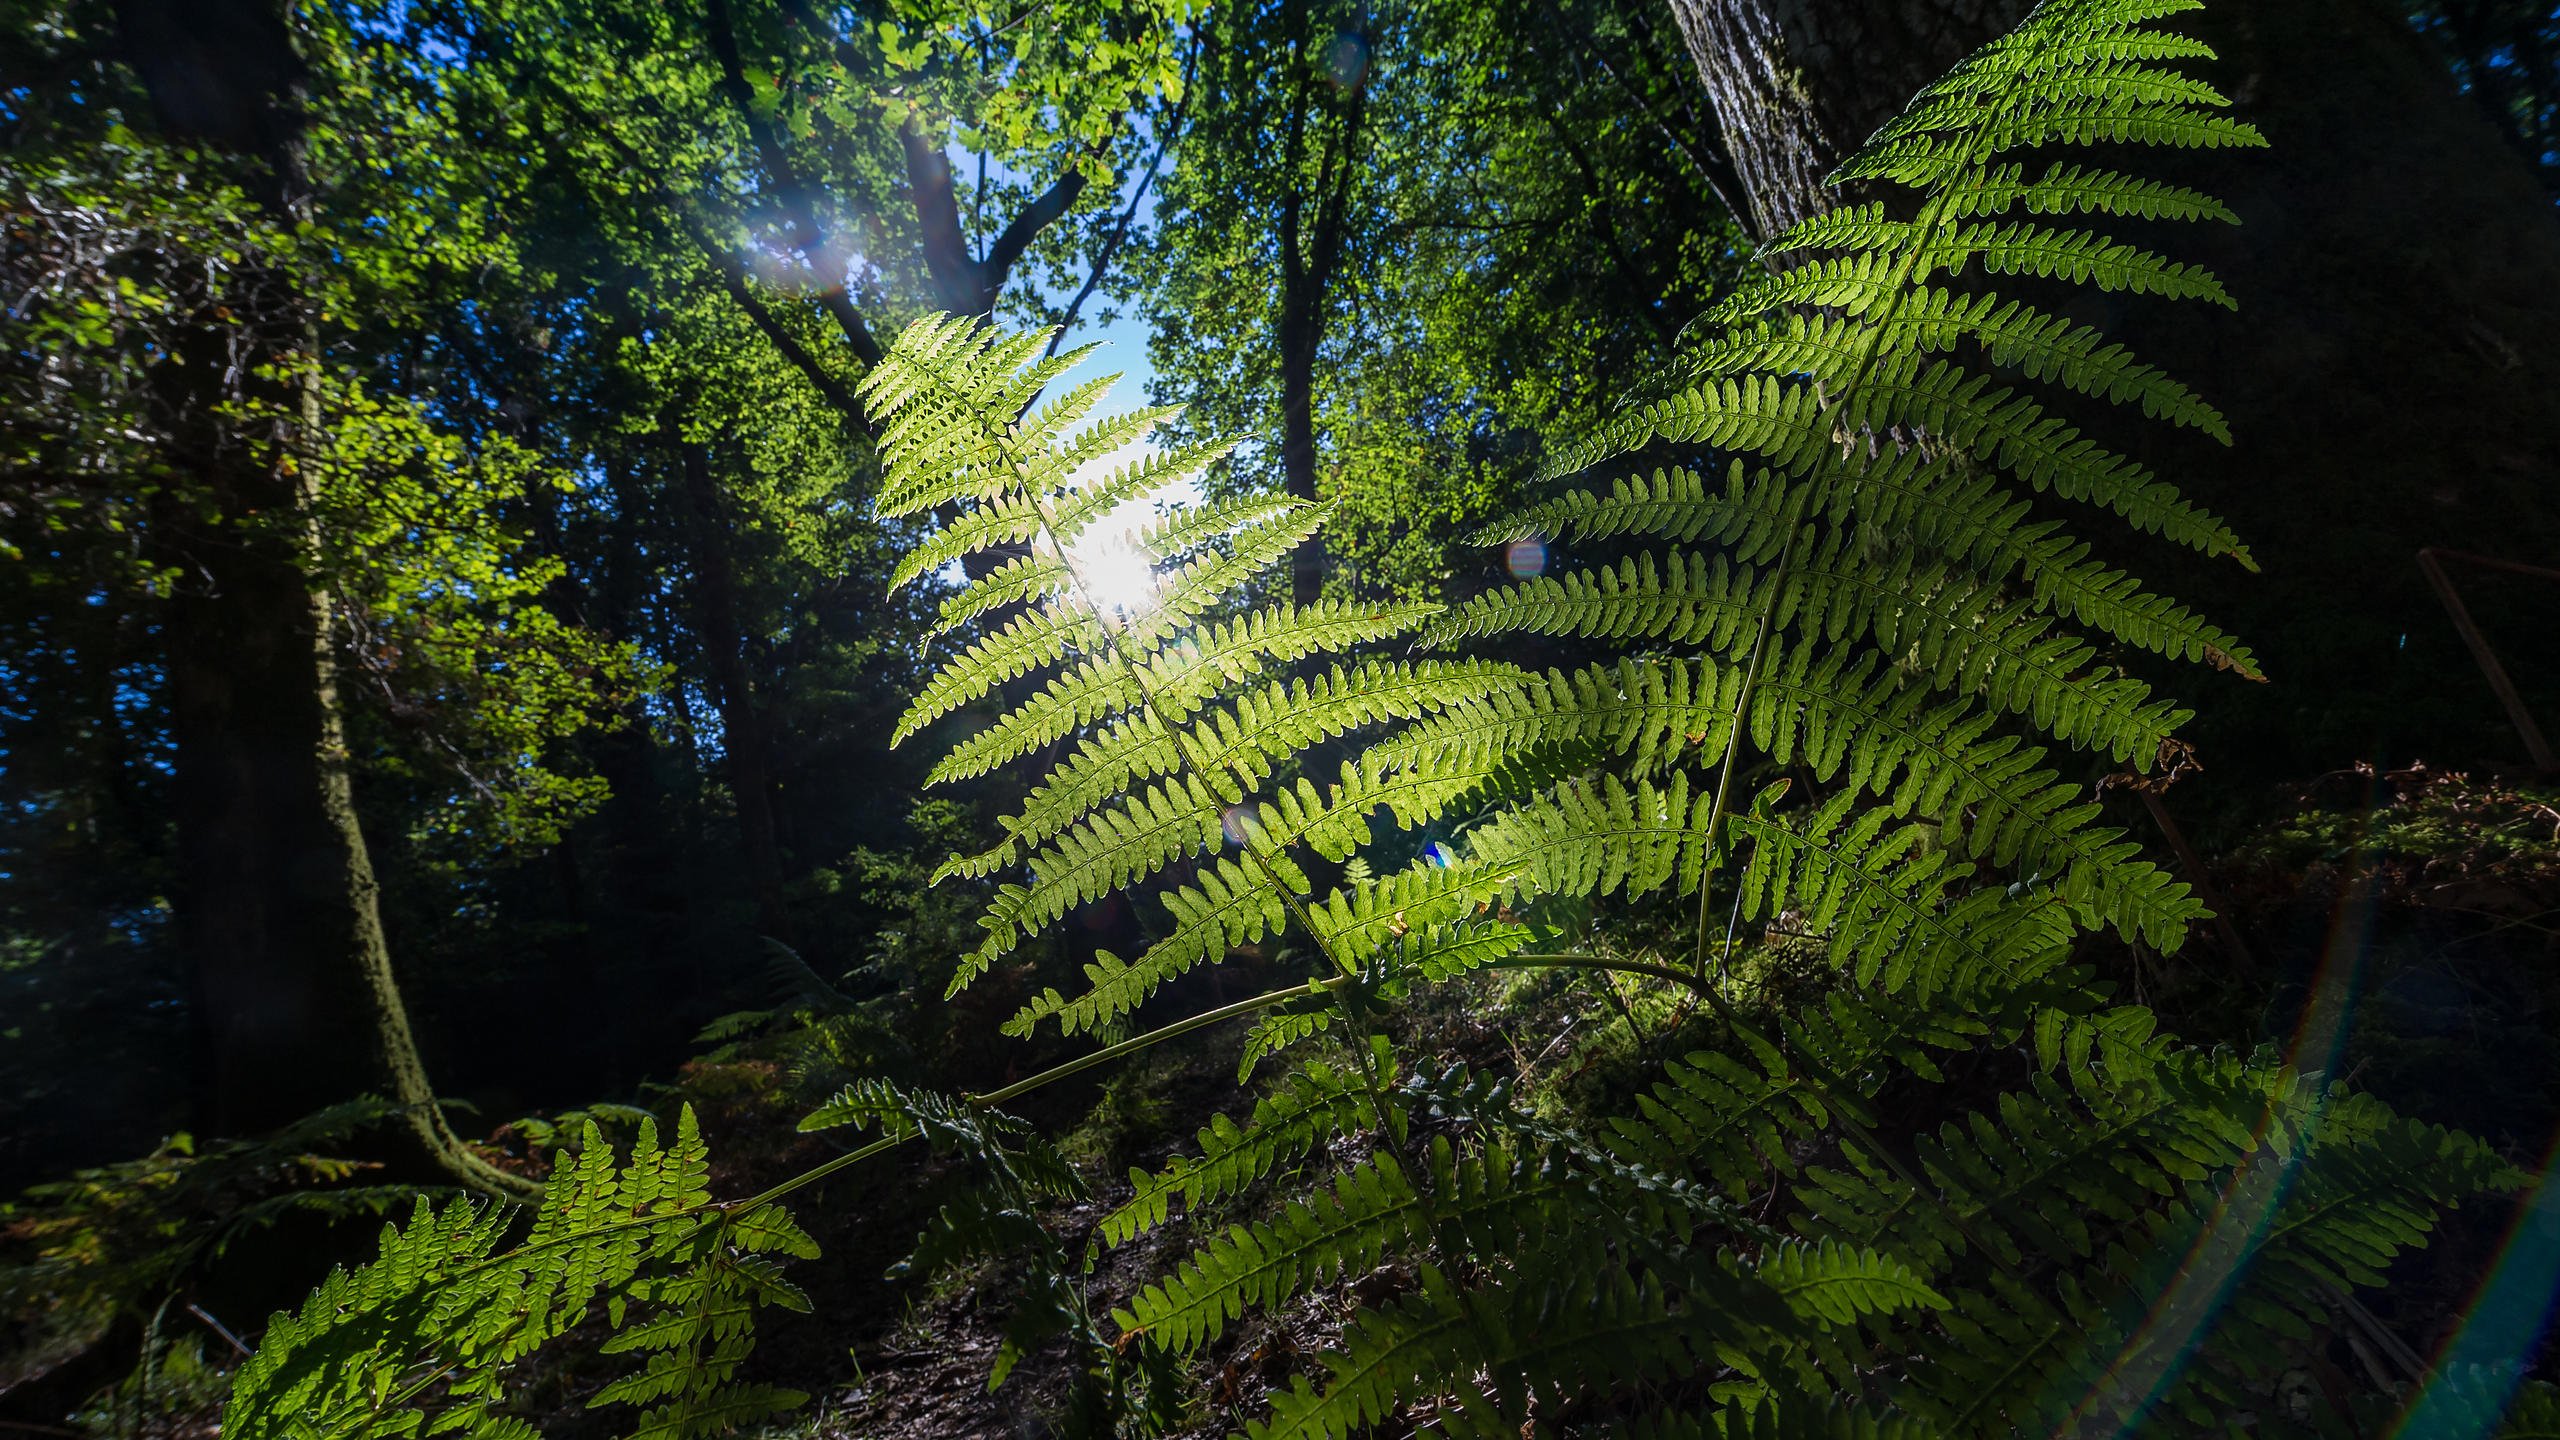 Sunlight Through Fern Leaves in a Forest